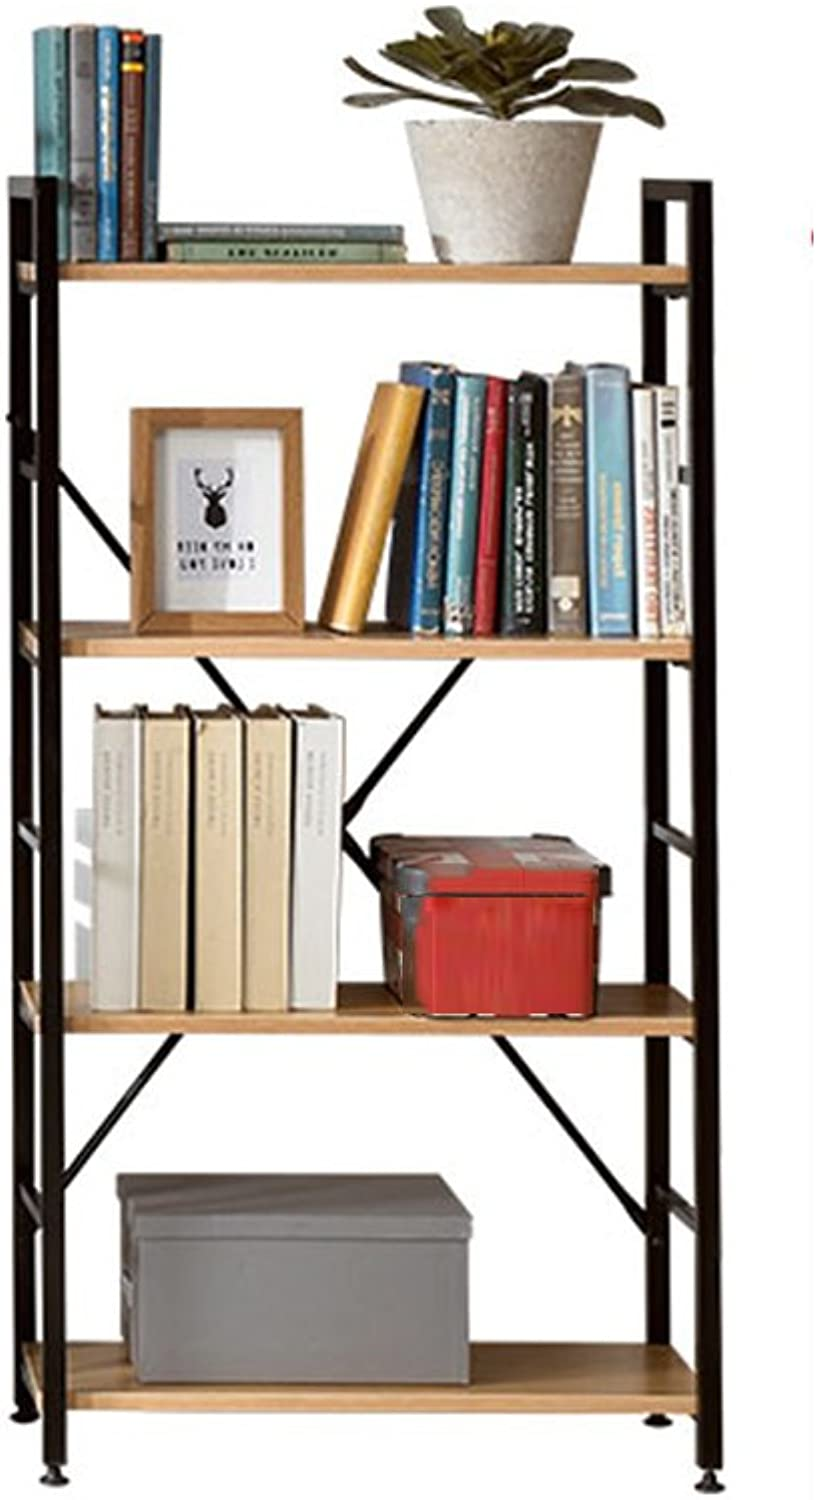 QIANGDA Bookshelf Composite Layer Iron Display Stand Particle Board Bookcase Finishing Rack Commodity Shelf, 3 Tiers 4 Tiers 5 Tiers, (color   Black, Size   600 x 280 x 1165mm)